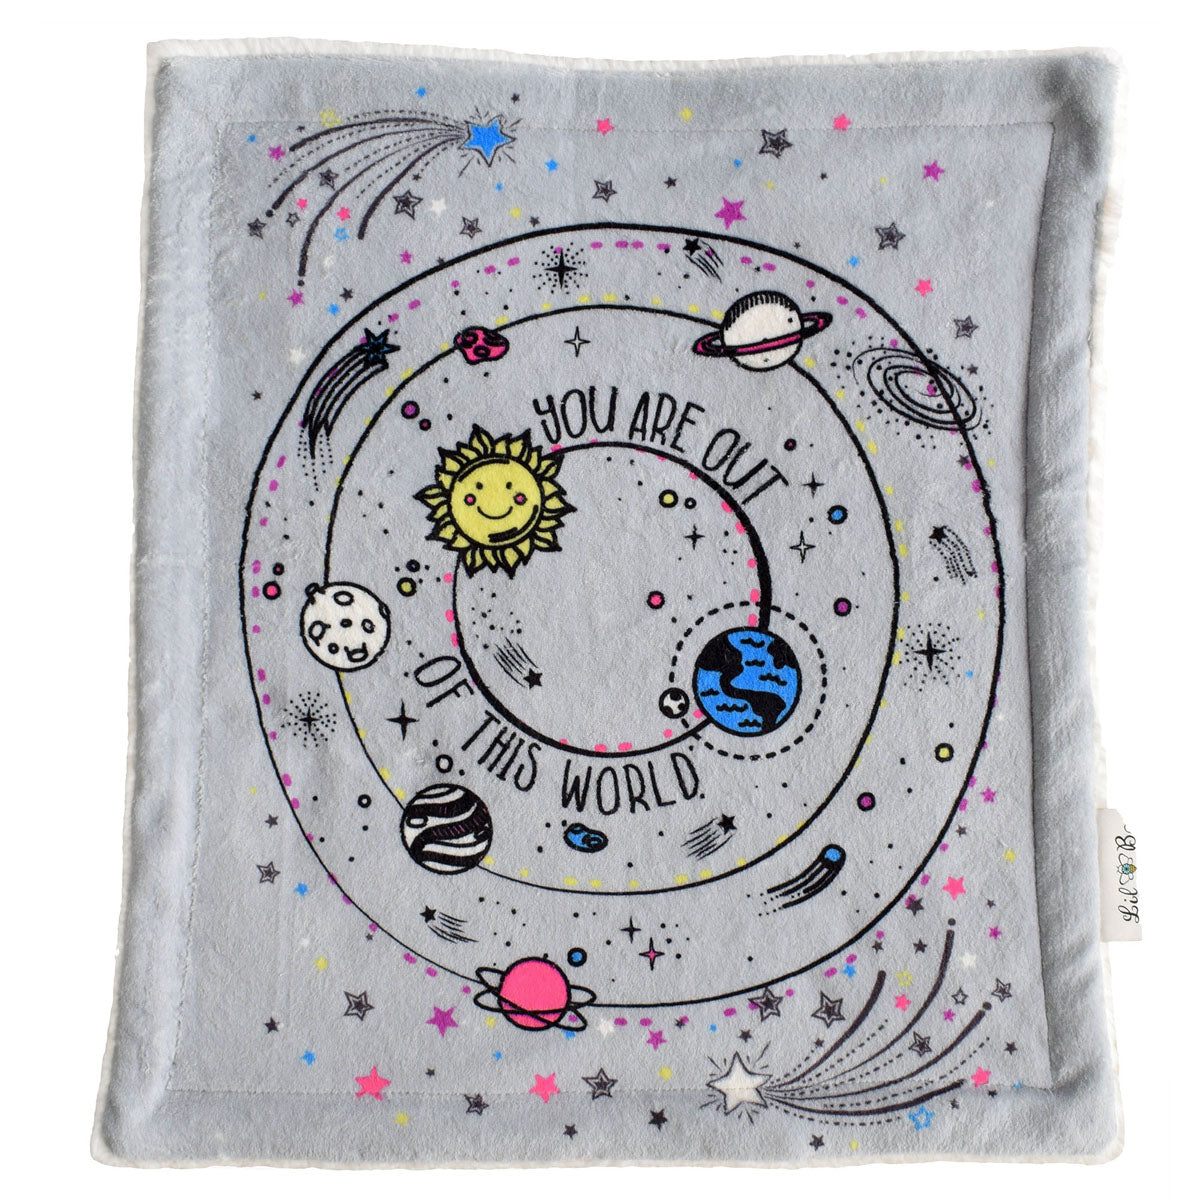 You are out of this world security blanket from Lil Be